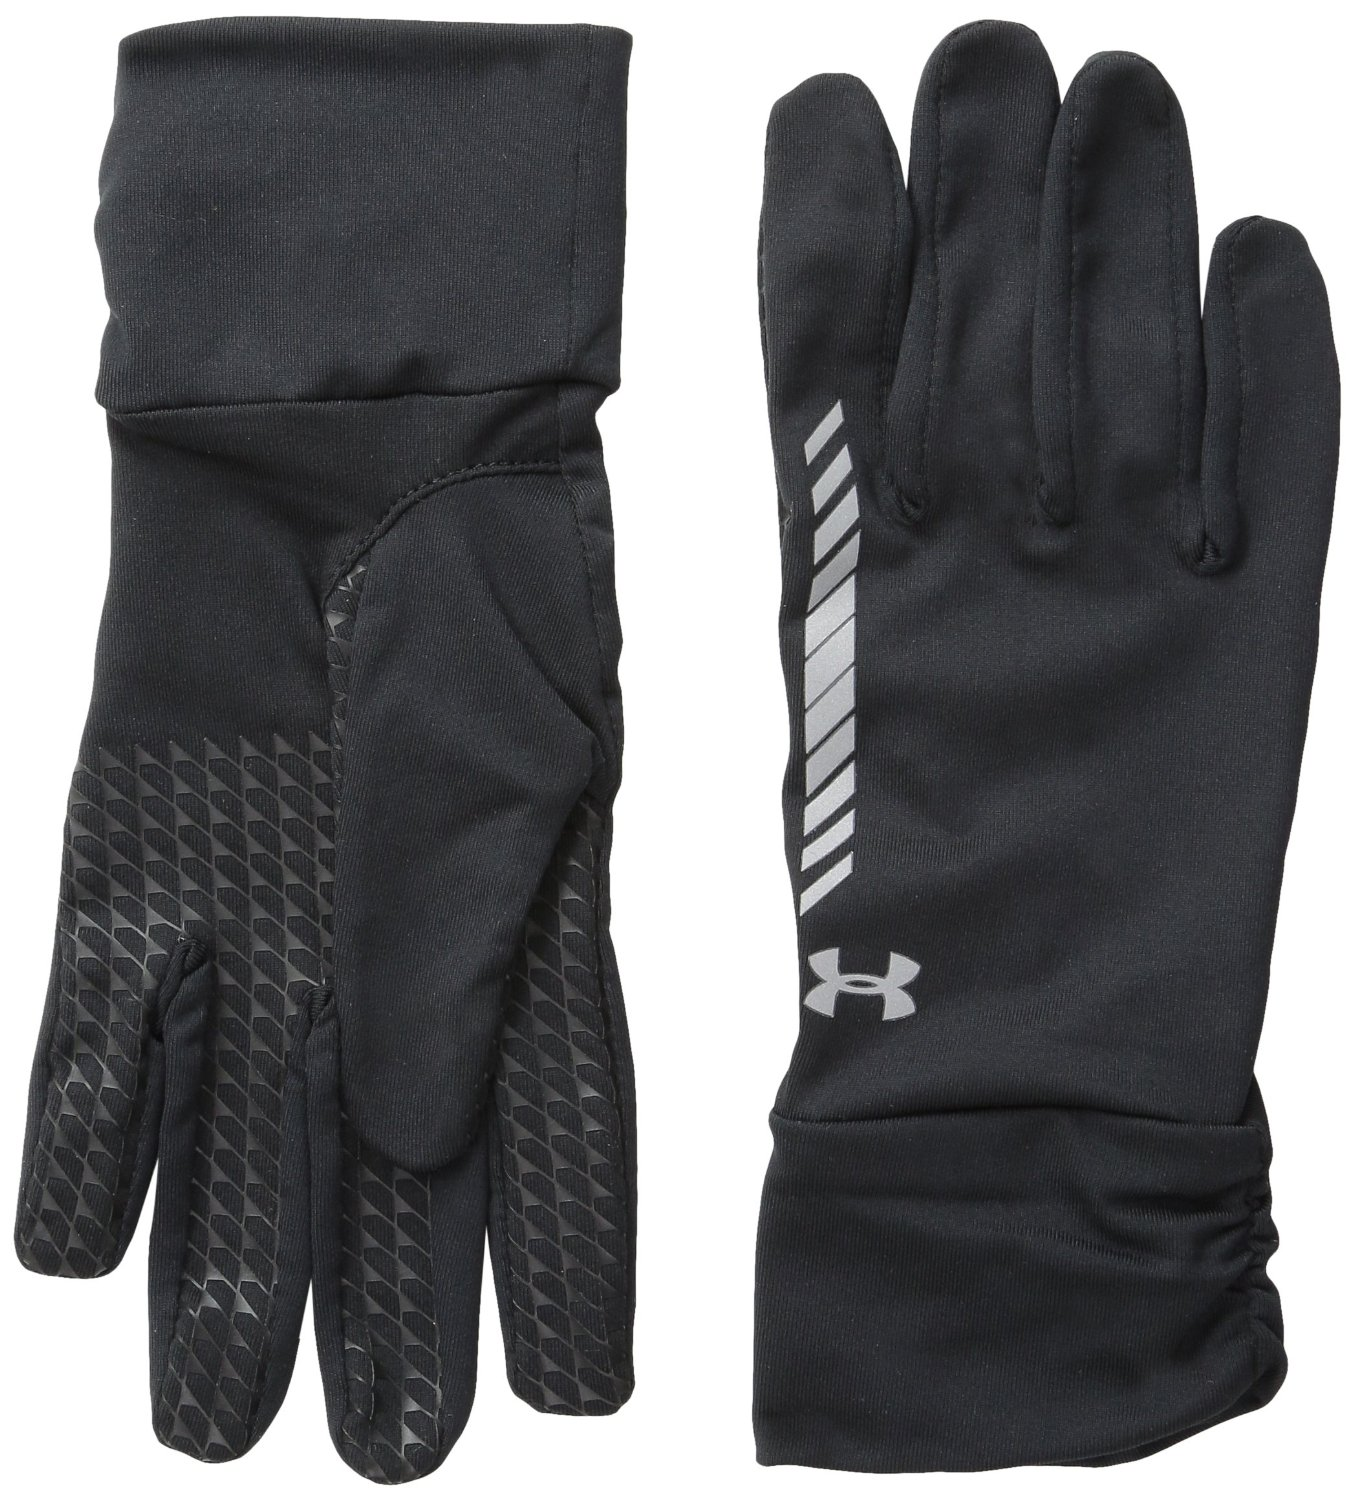 Under Armour Women's Layered Up Liner Glove